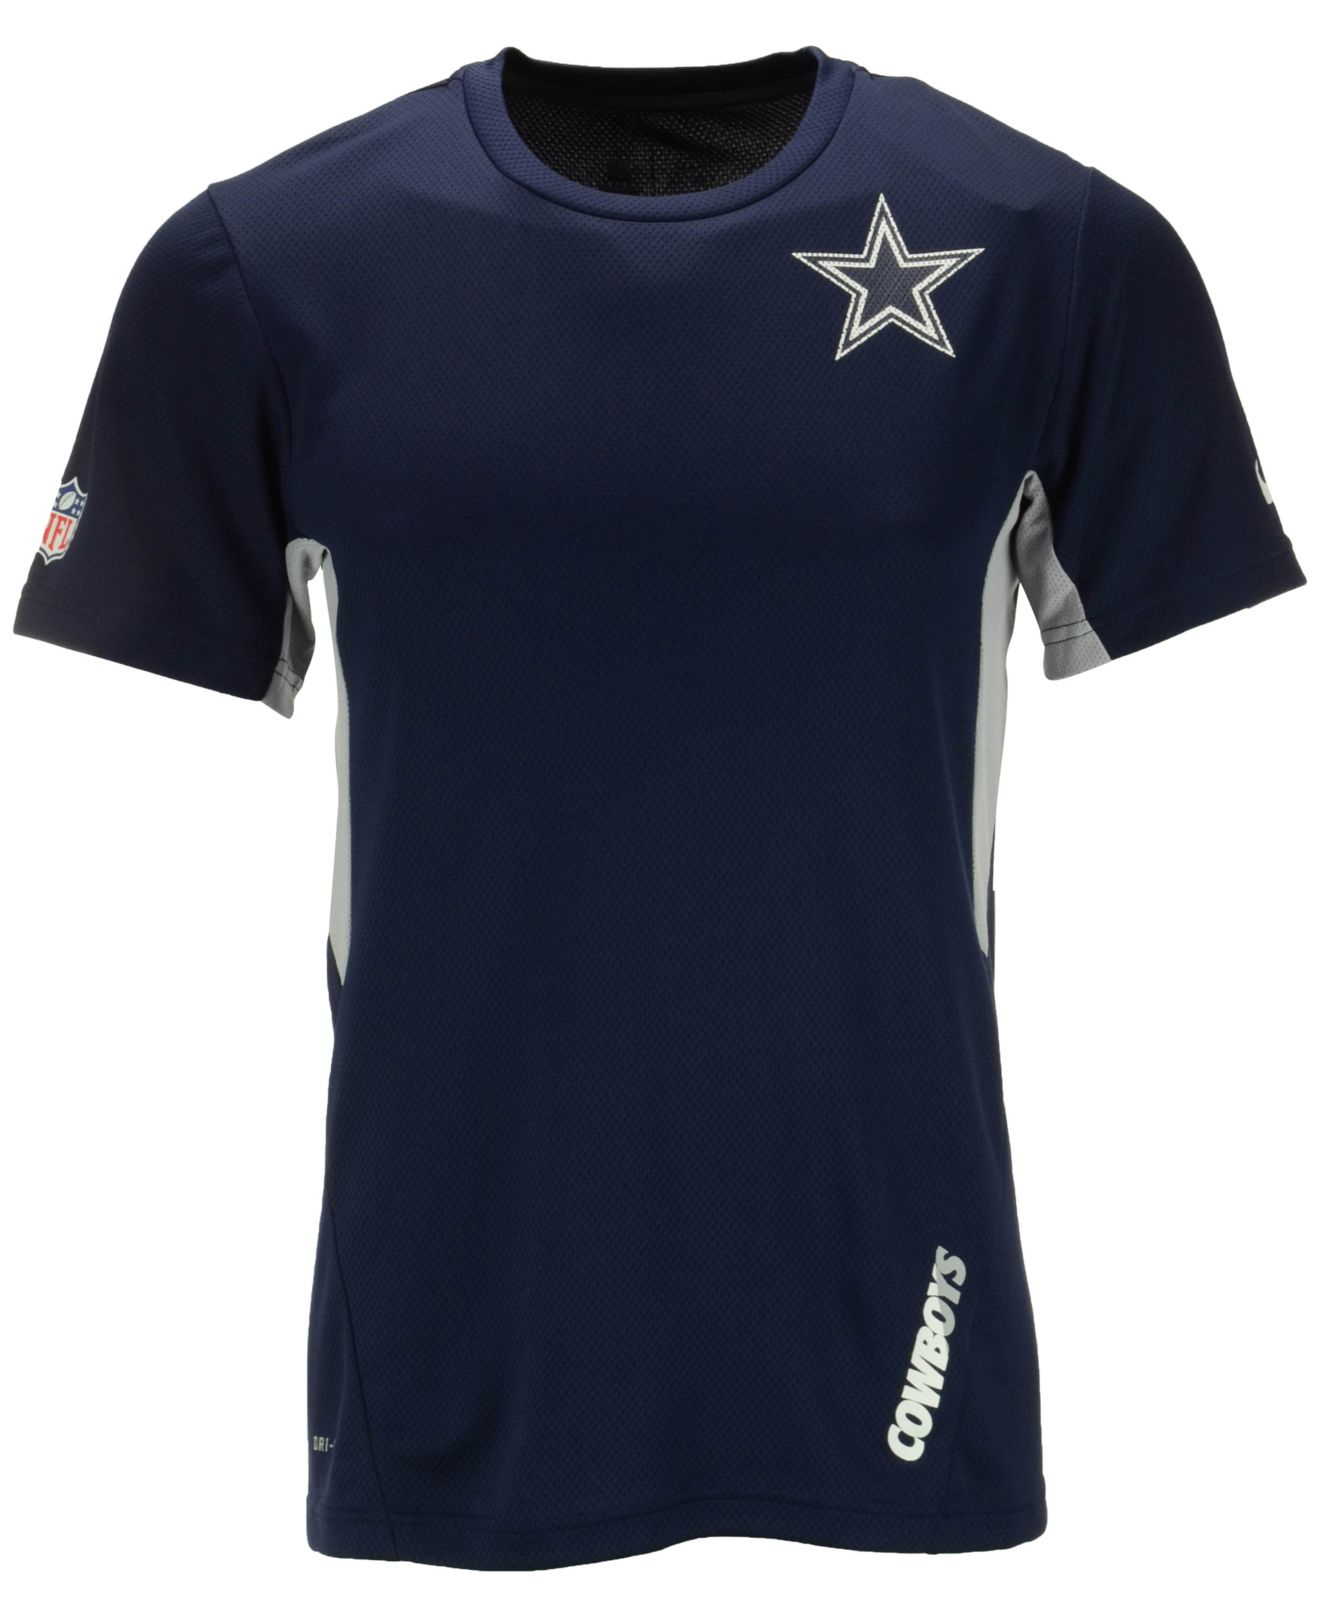 dallas men Find men's dallas cowboys clothing at nikecom enjoy free shipping and returns with nikeplus.